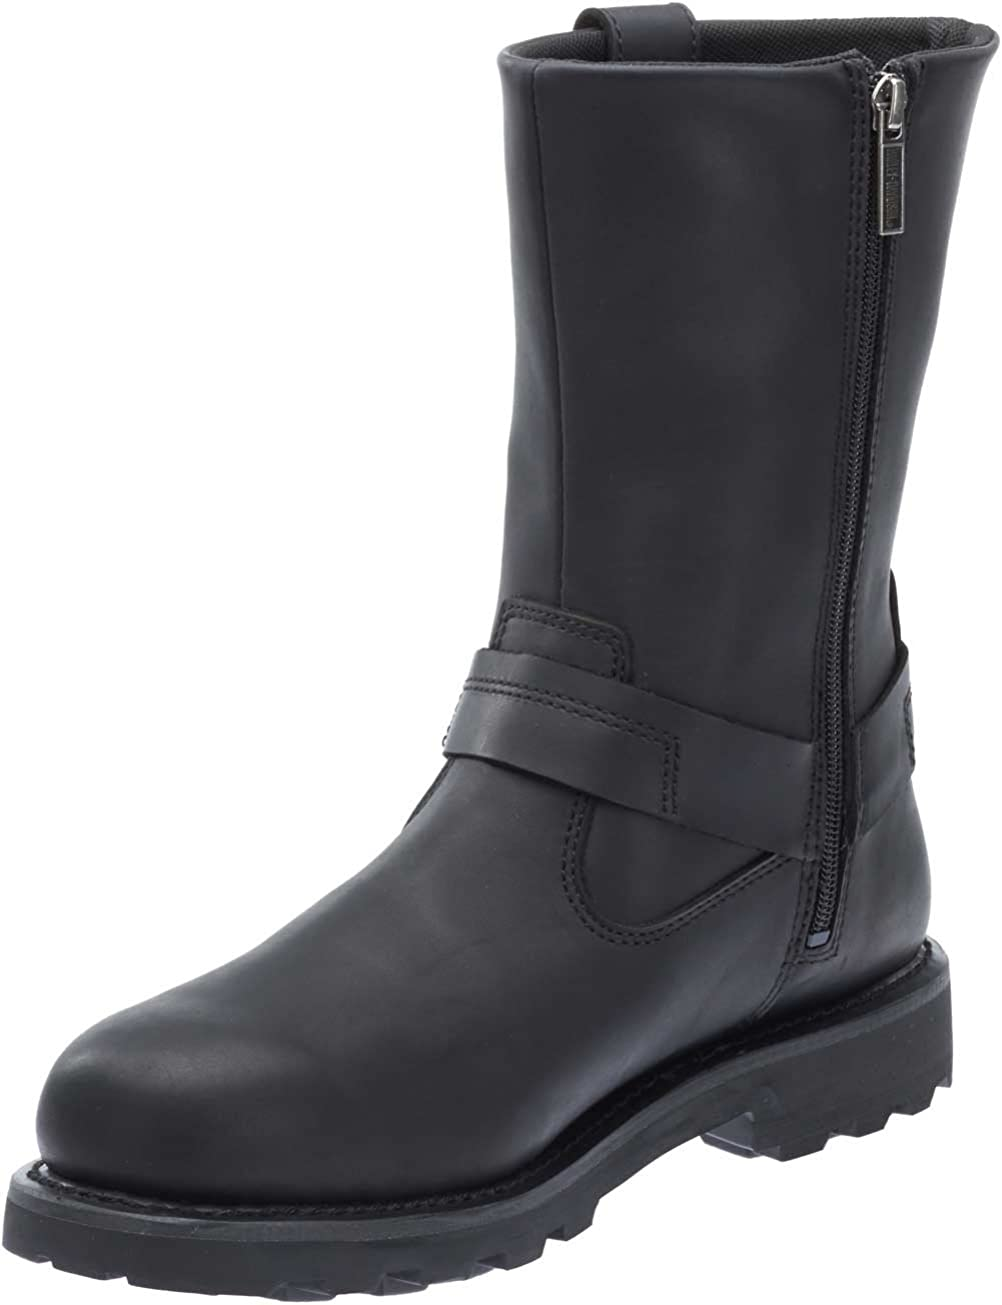 Harley-Davidson Mens Mansfield Black Performance Motorcycle Boots D96112